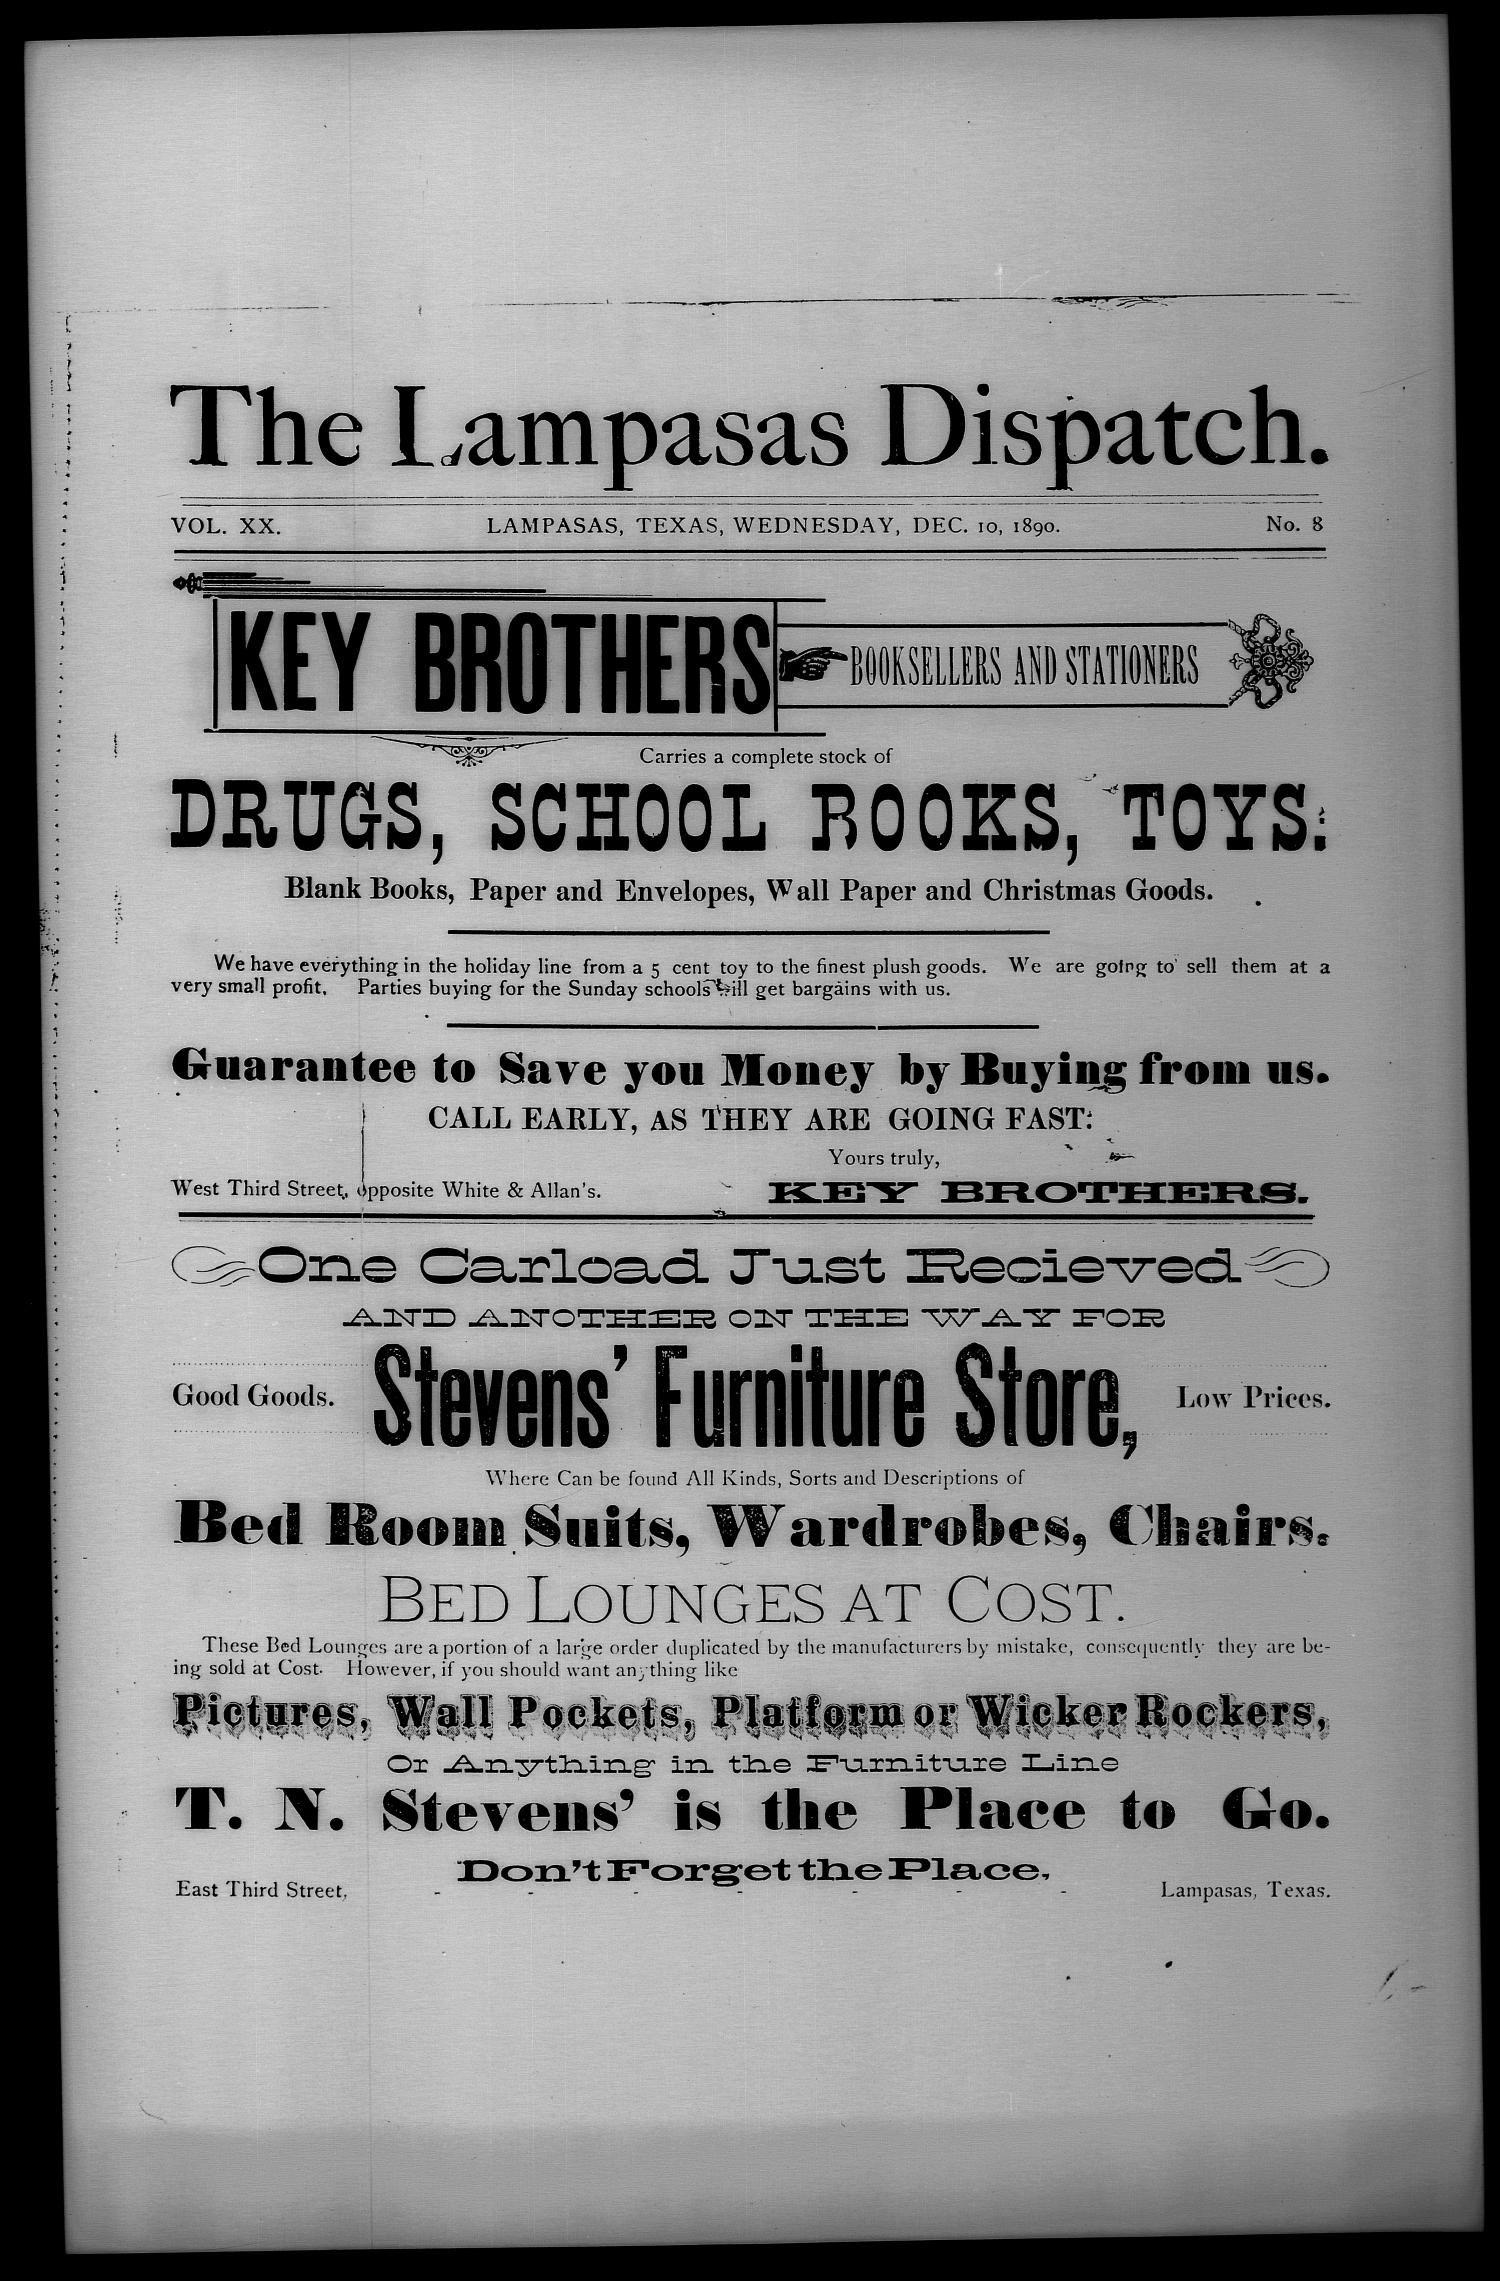 The Lampasas Dispatch (Lampasas, Tex.), Vol. 20, No. 8, Ed. 2 Wednesday, December 10, 1890                                                                                                      [Sequence #]: 1 of 21